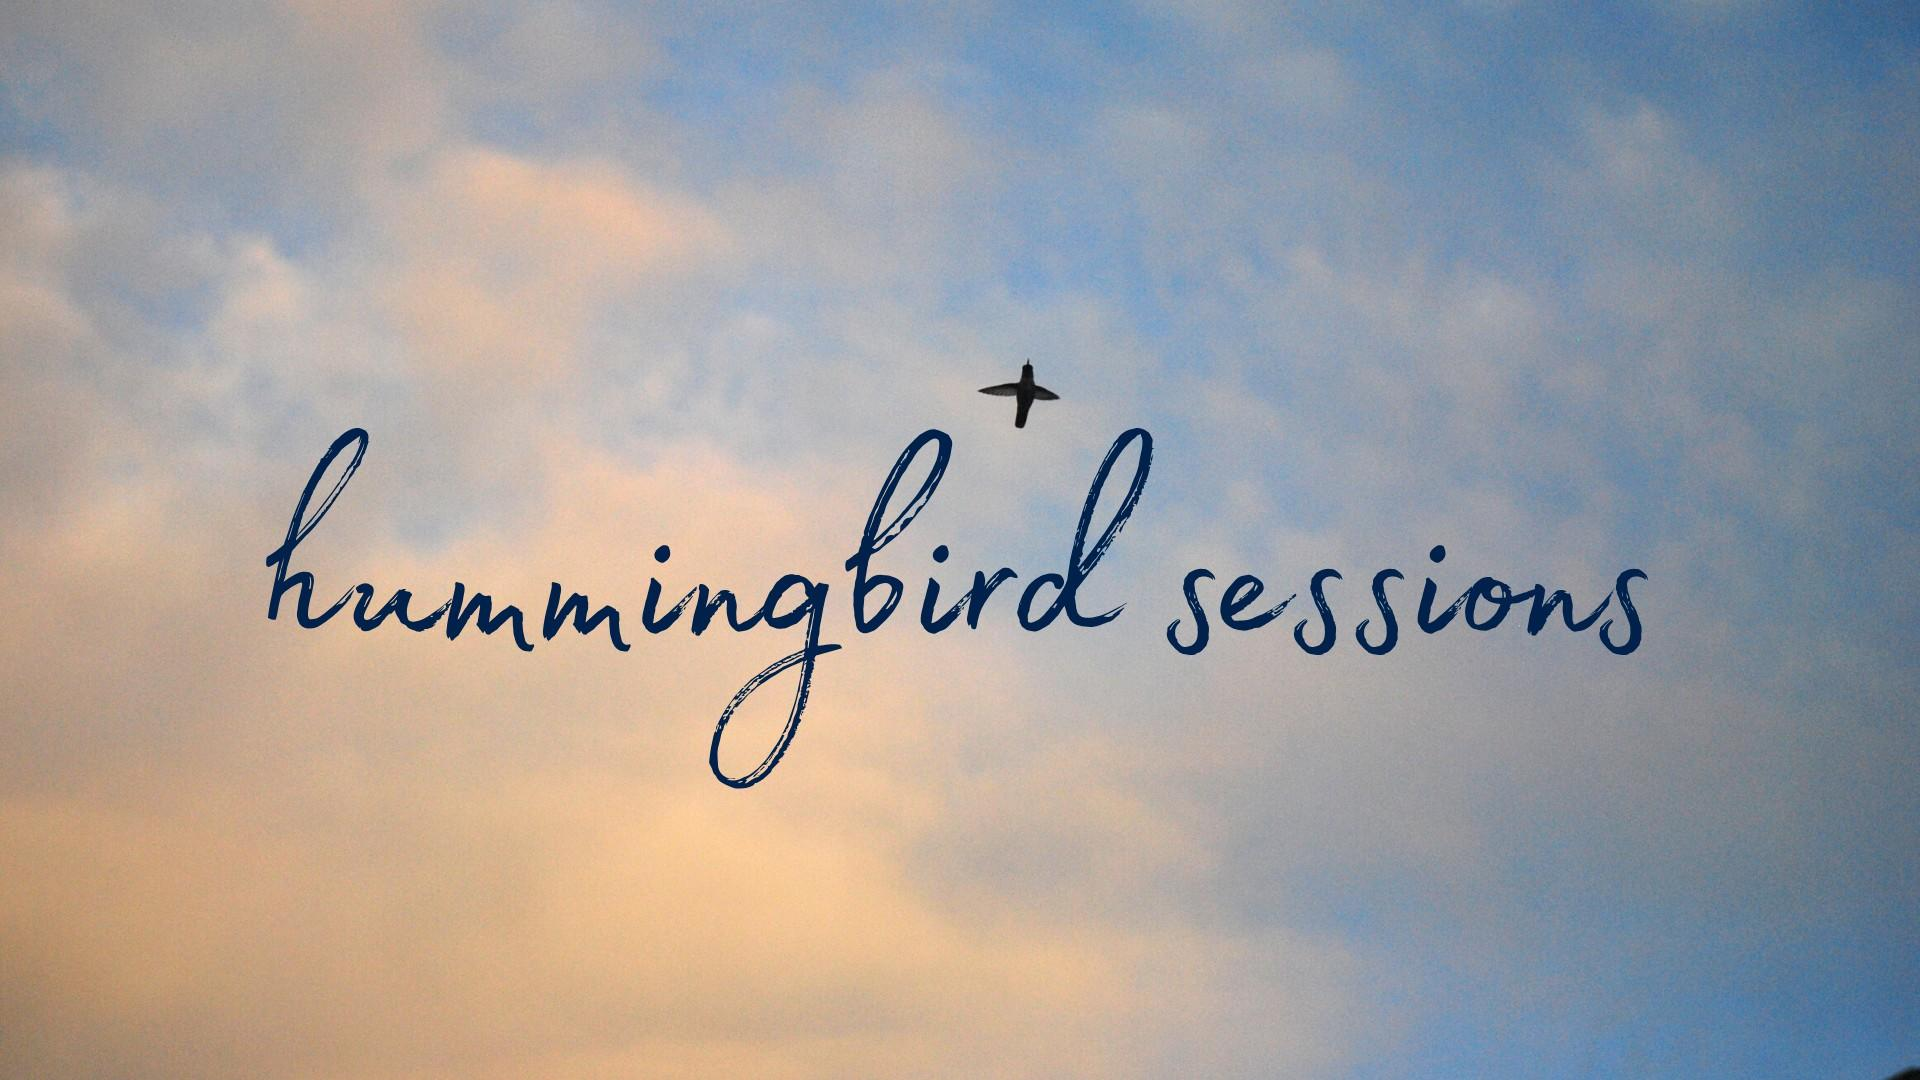 Hummingbird Sessions - free online writing sessions